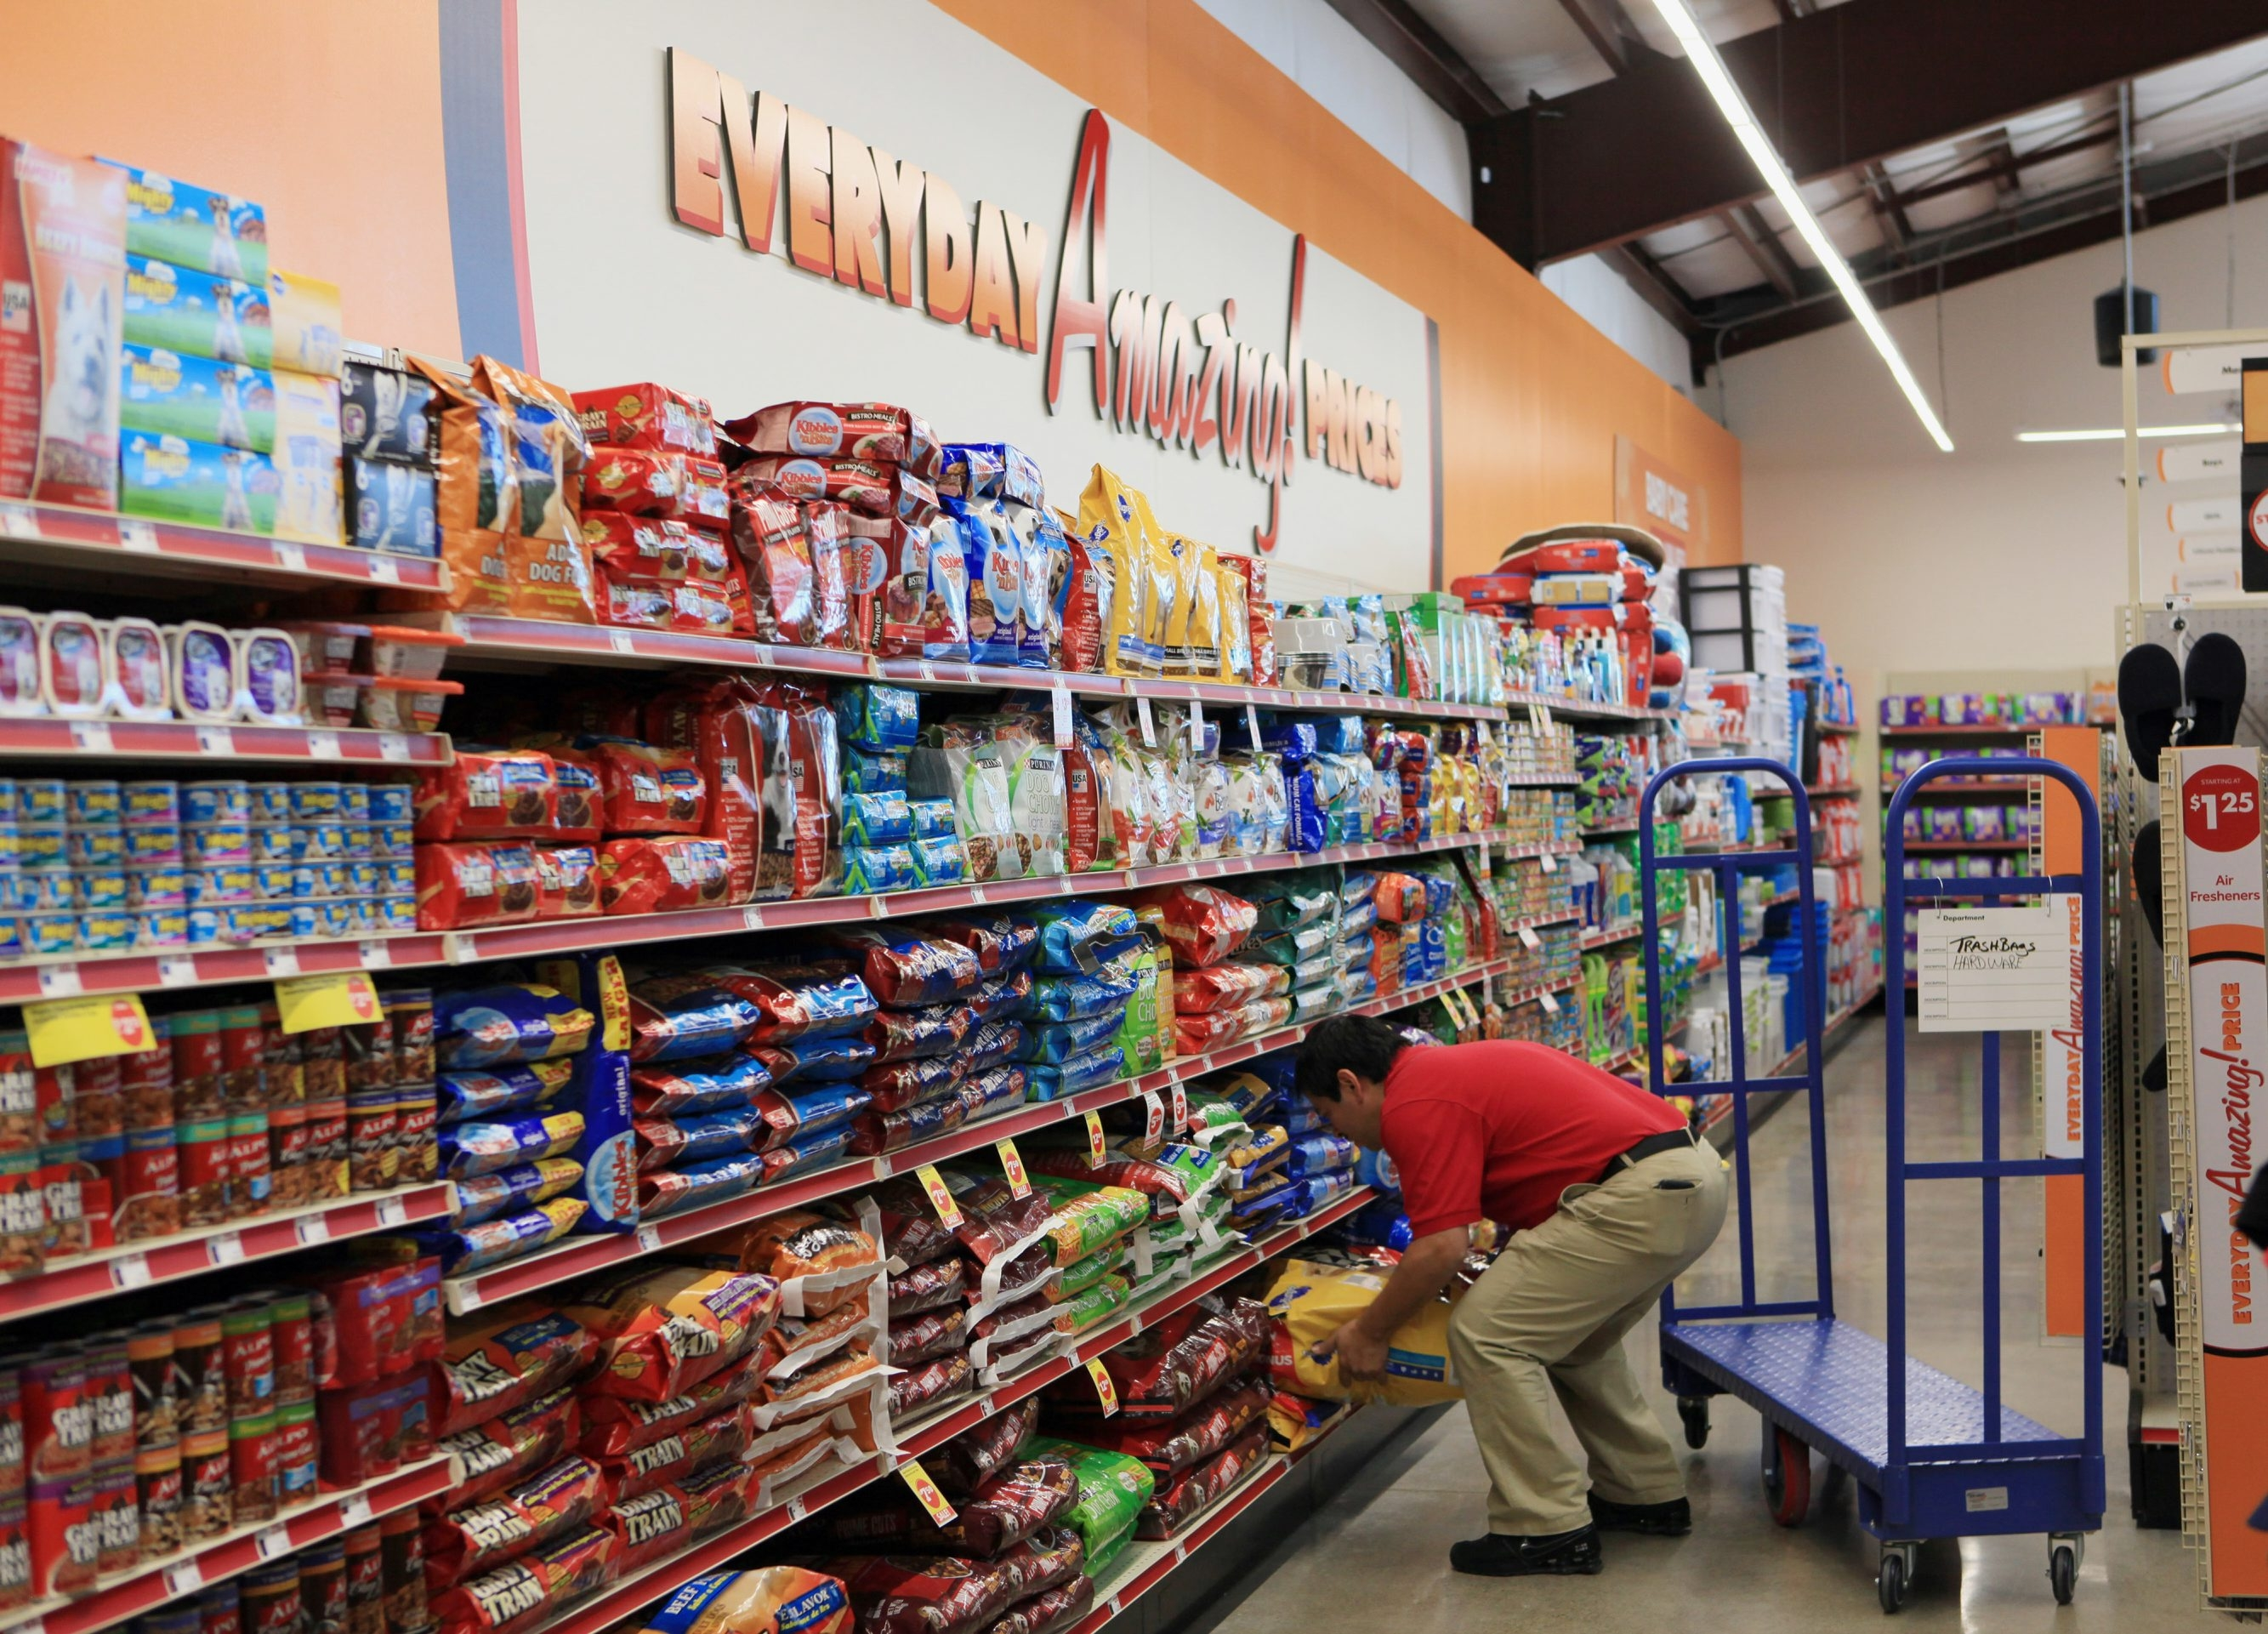 For workers and managers at stores such as this Family Dollar in Texas, the prospect of overtime pay that they don't currently receive has created interest in President Obama's proposal, but the potential impact on employees and businesses is anything but clear-cut.